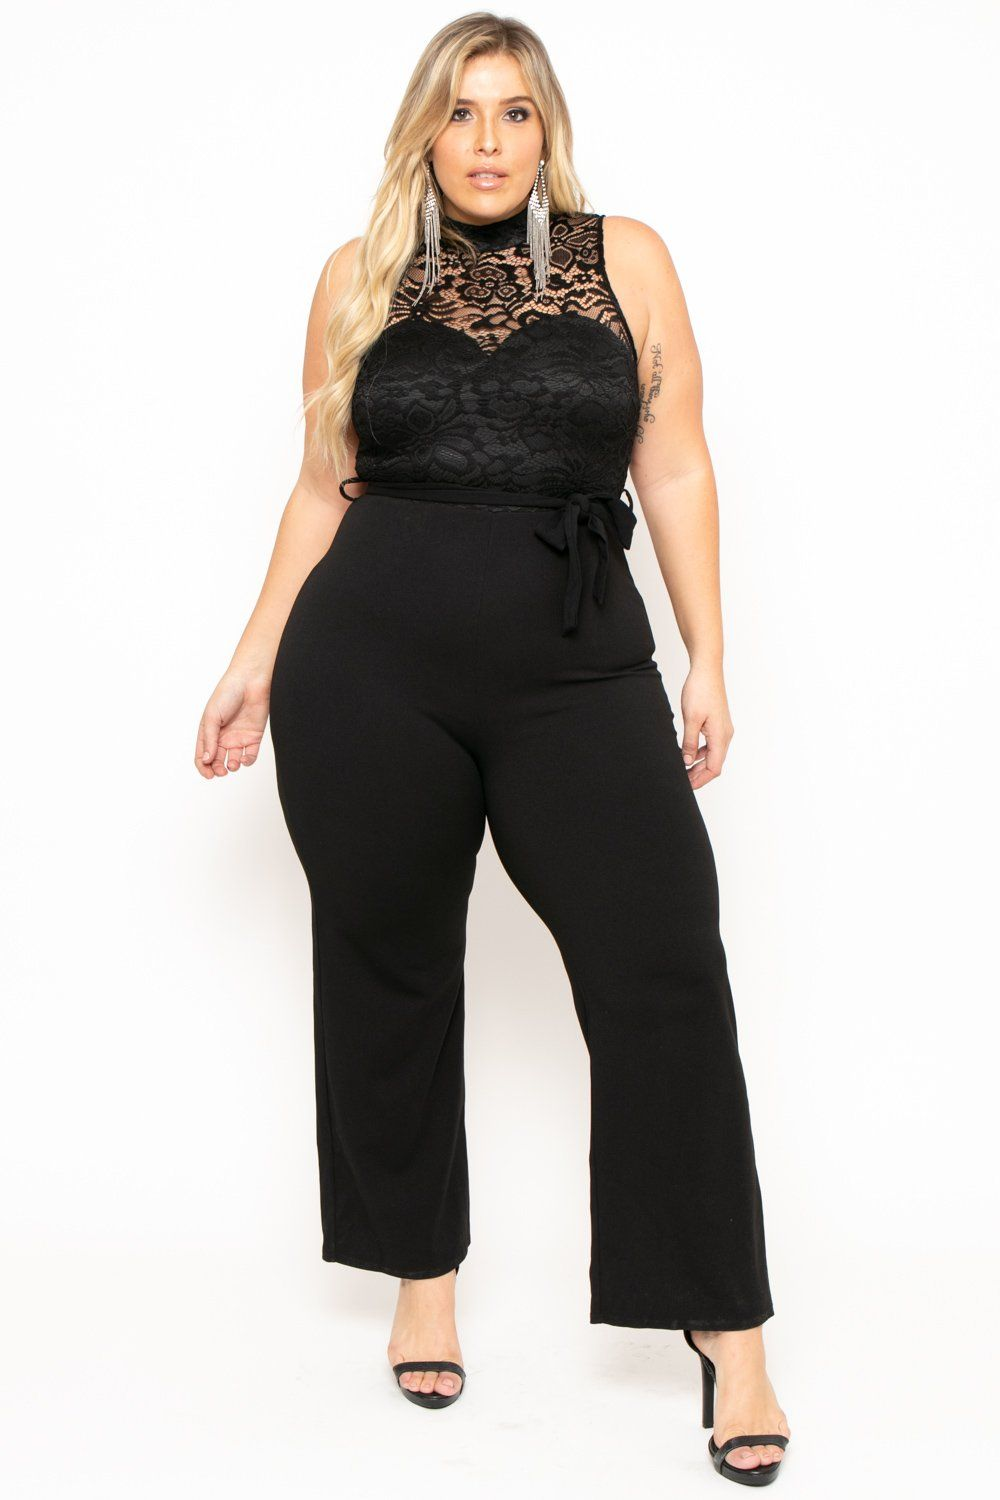 6088c1f2194 Plus Size Mock Neck Lace Top Jumpsuit - Black – Curvy Sense